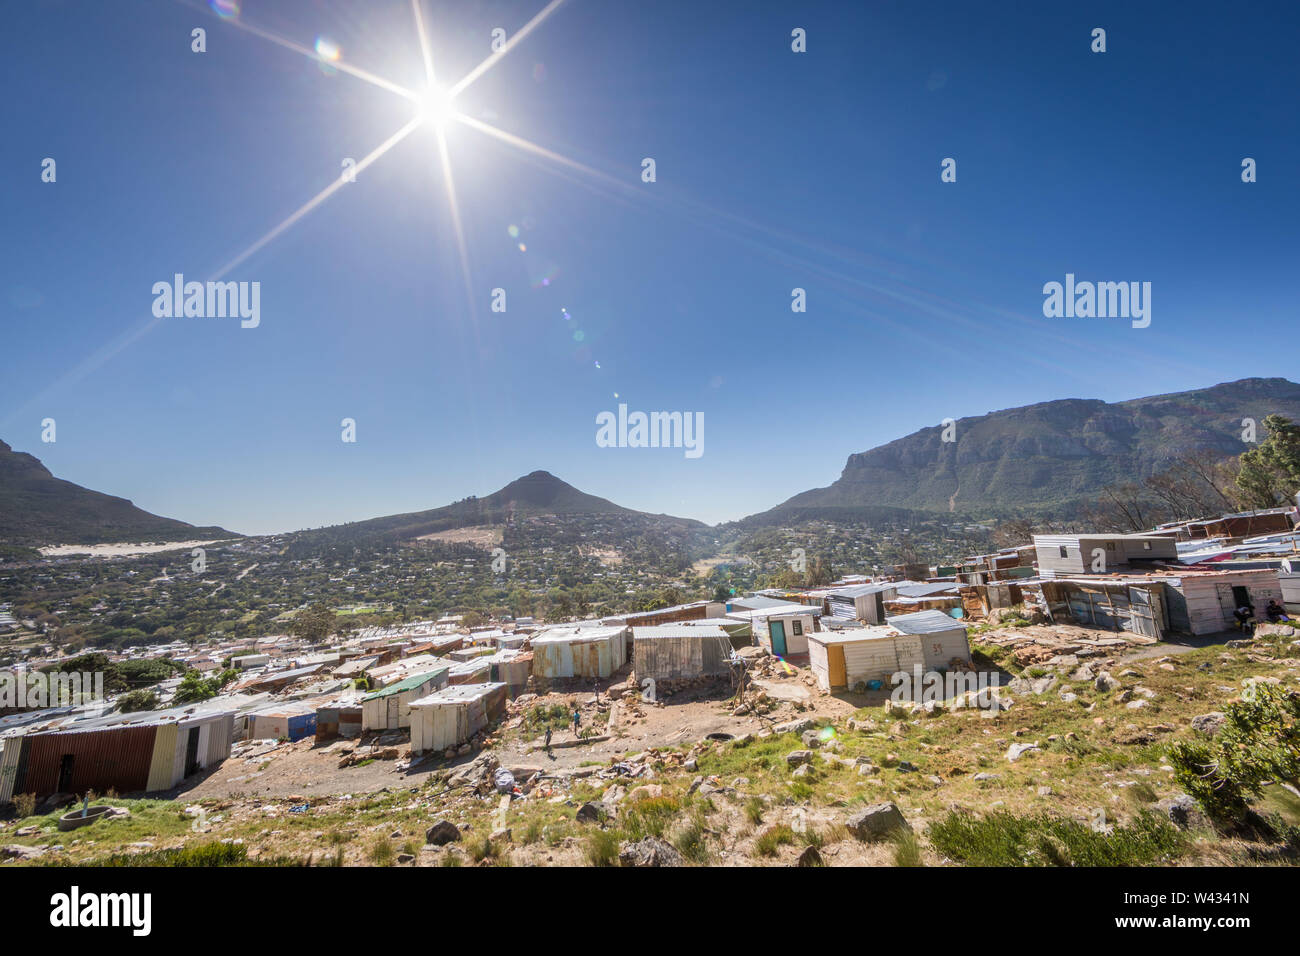 Imizamo Yethu informal settlement, Hout Bay, Cape Town, Western Cape, South Africa lacks infrastructure like adequate water supply, toilets, sewerage Stock Photo